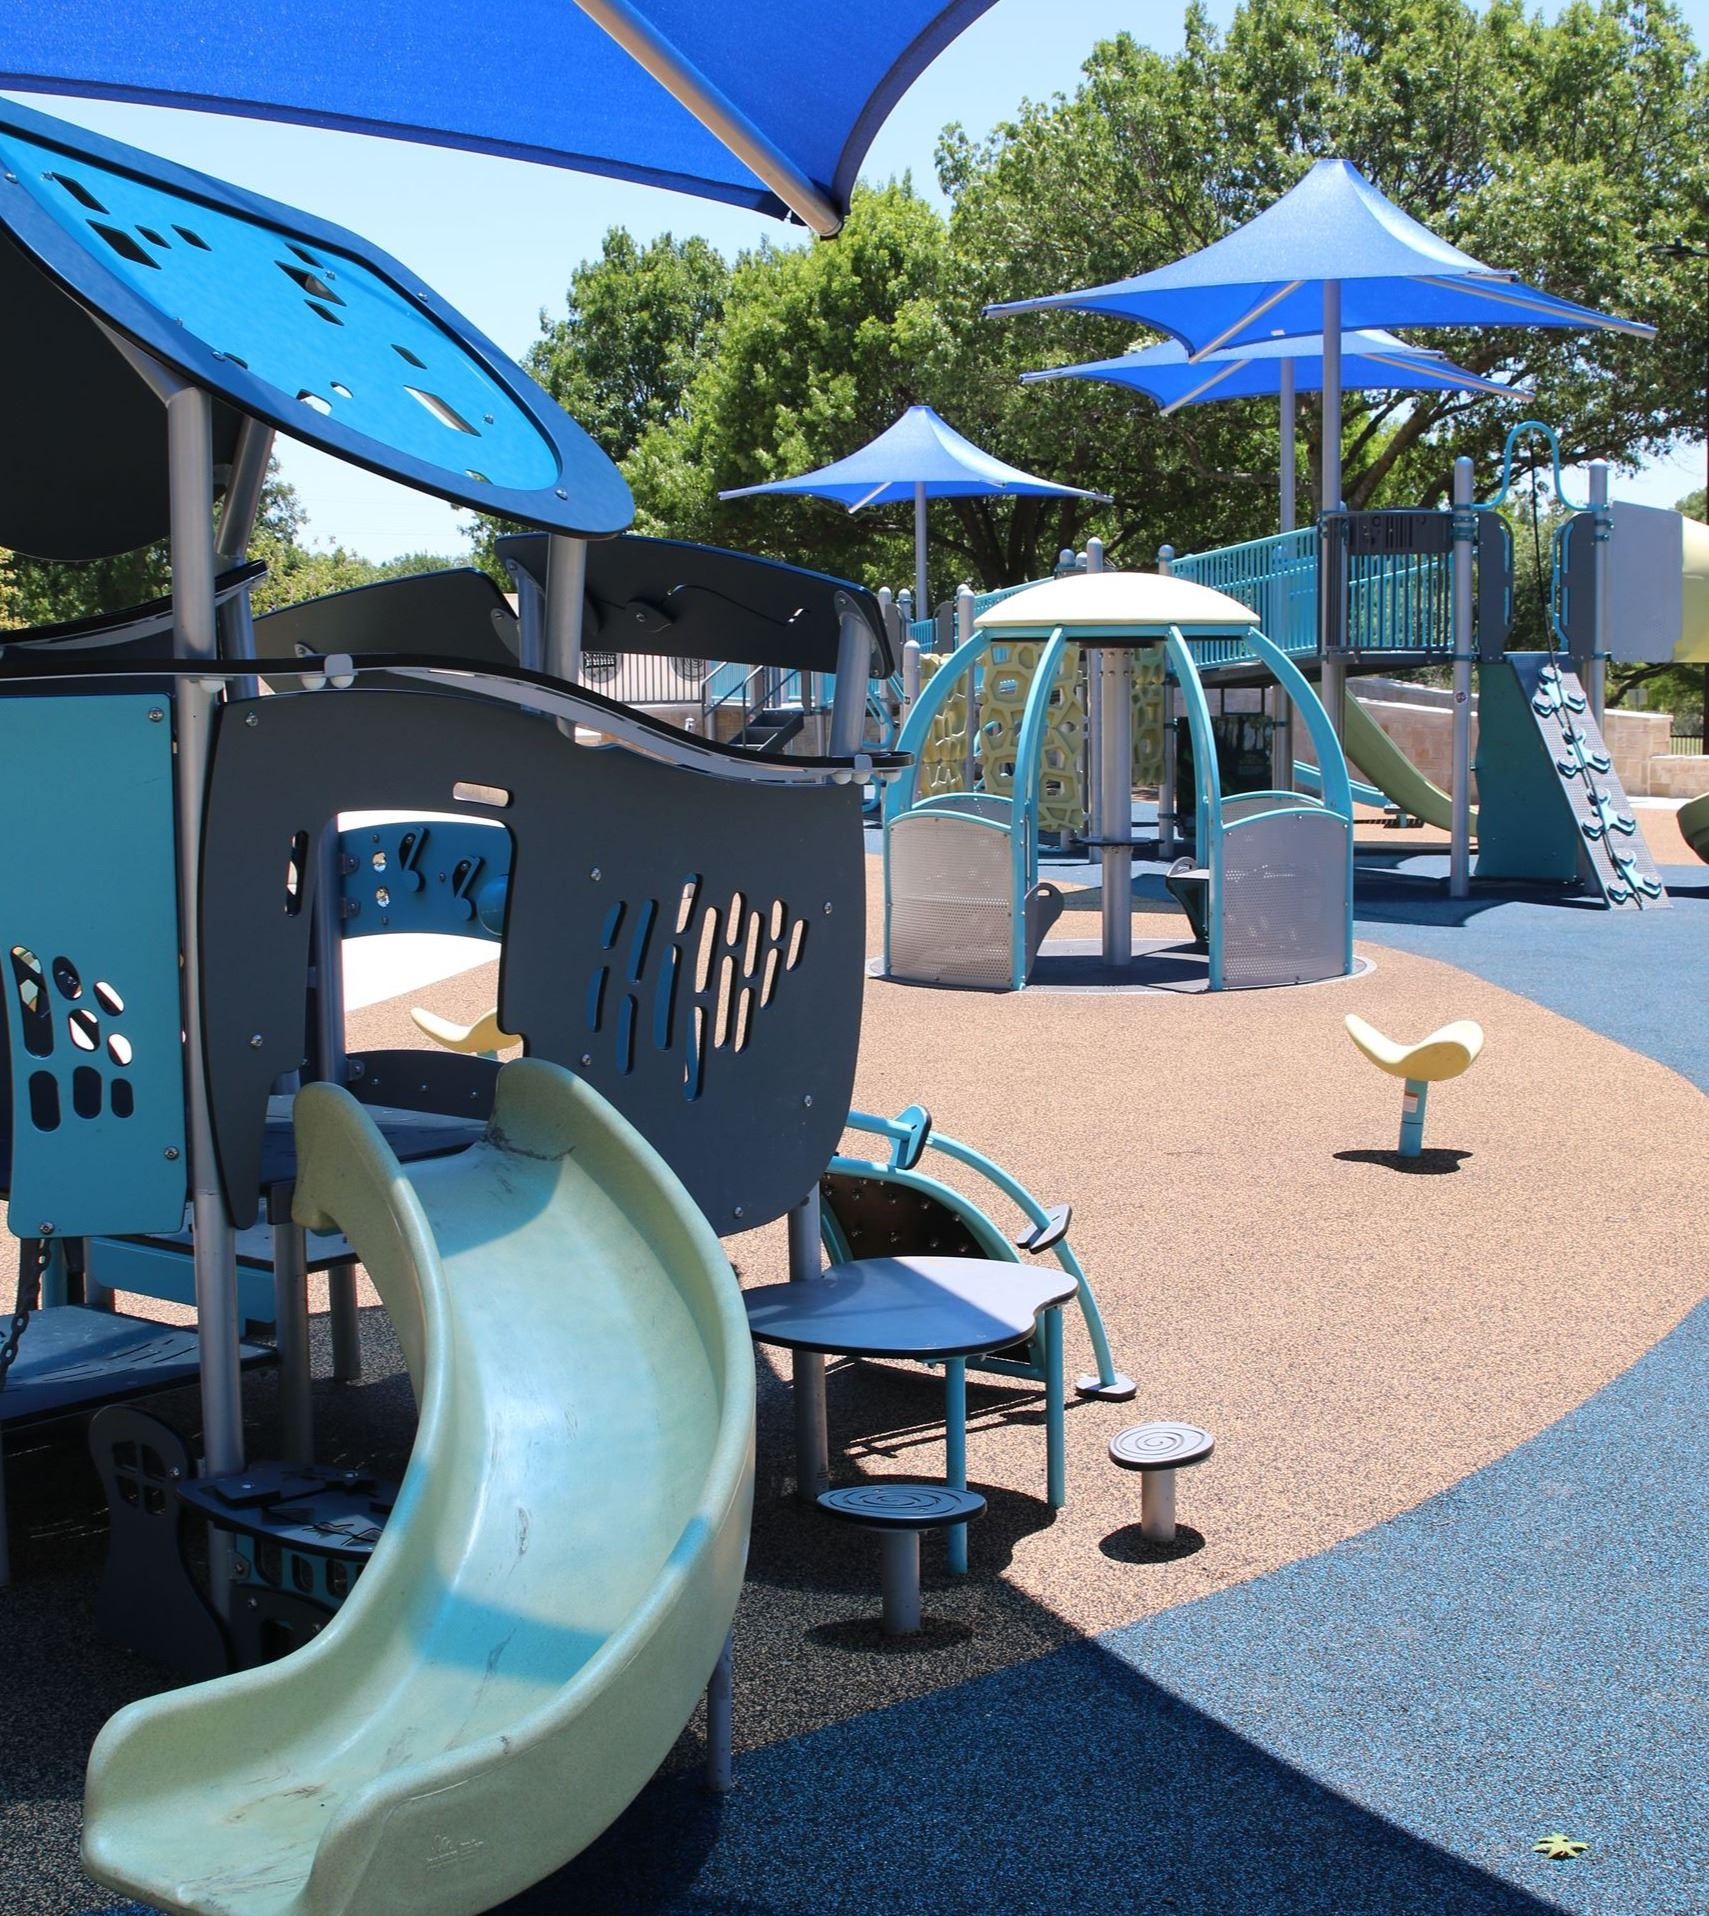 Central Park Playground with slide and other platforms with spinner seat in the middle